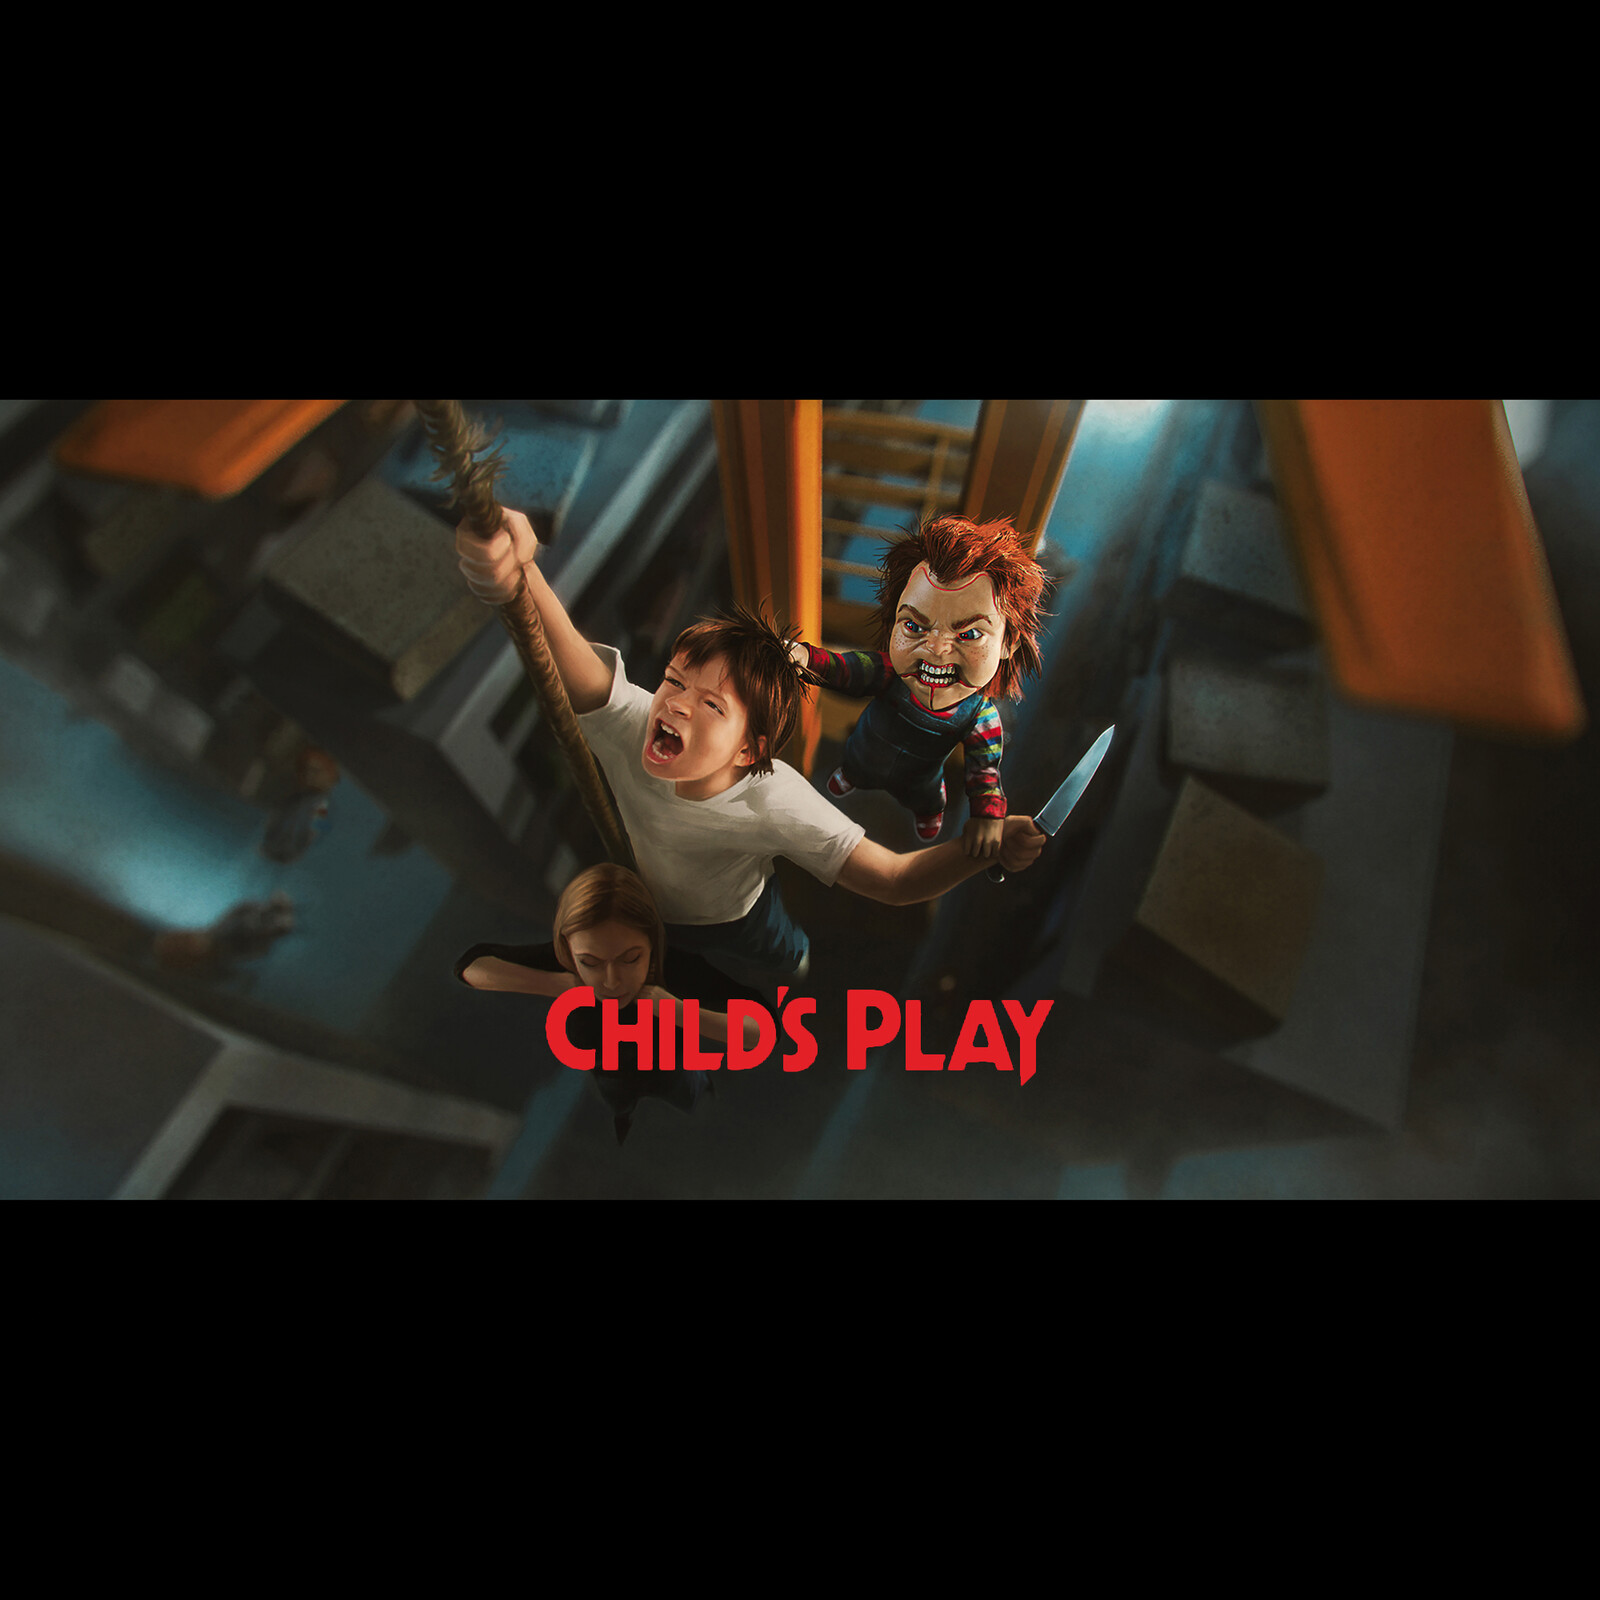 Childs Play 2019 concept art